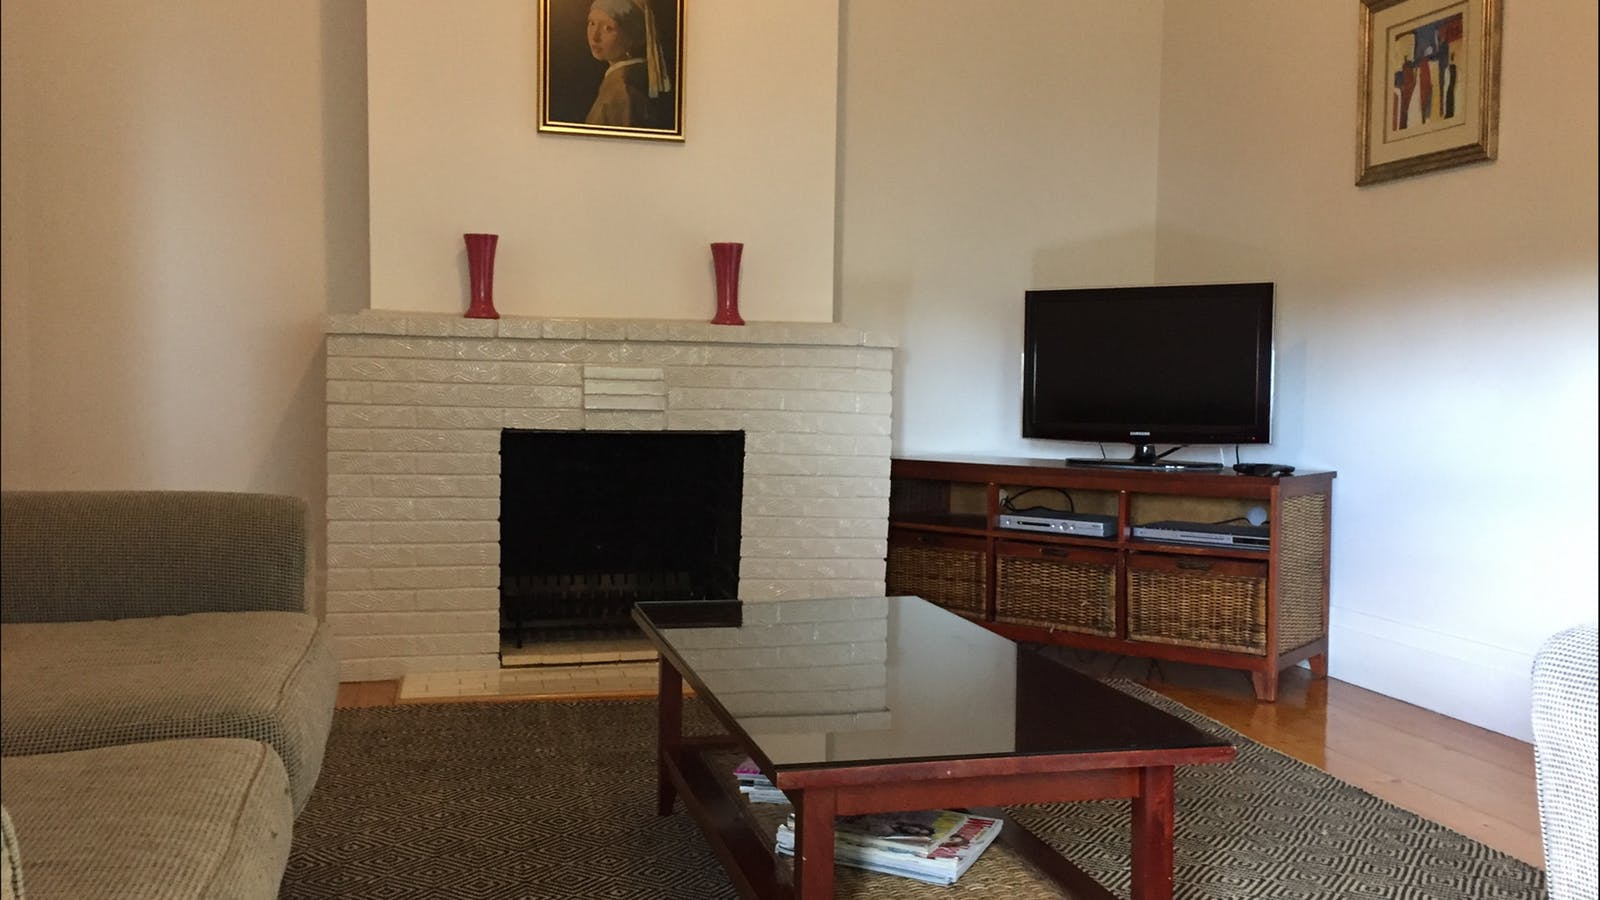 Comfortable lounge with TV, Foxtel, DVD and sitting room at the front of the house.